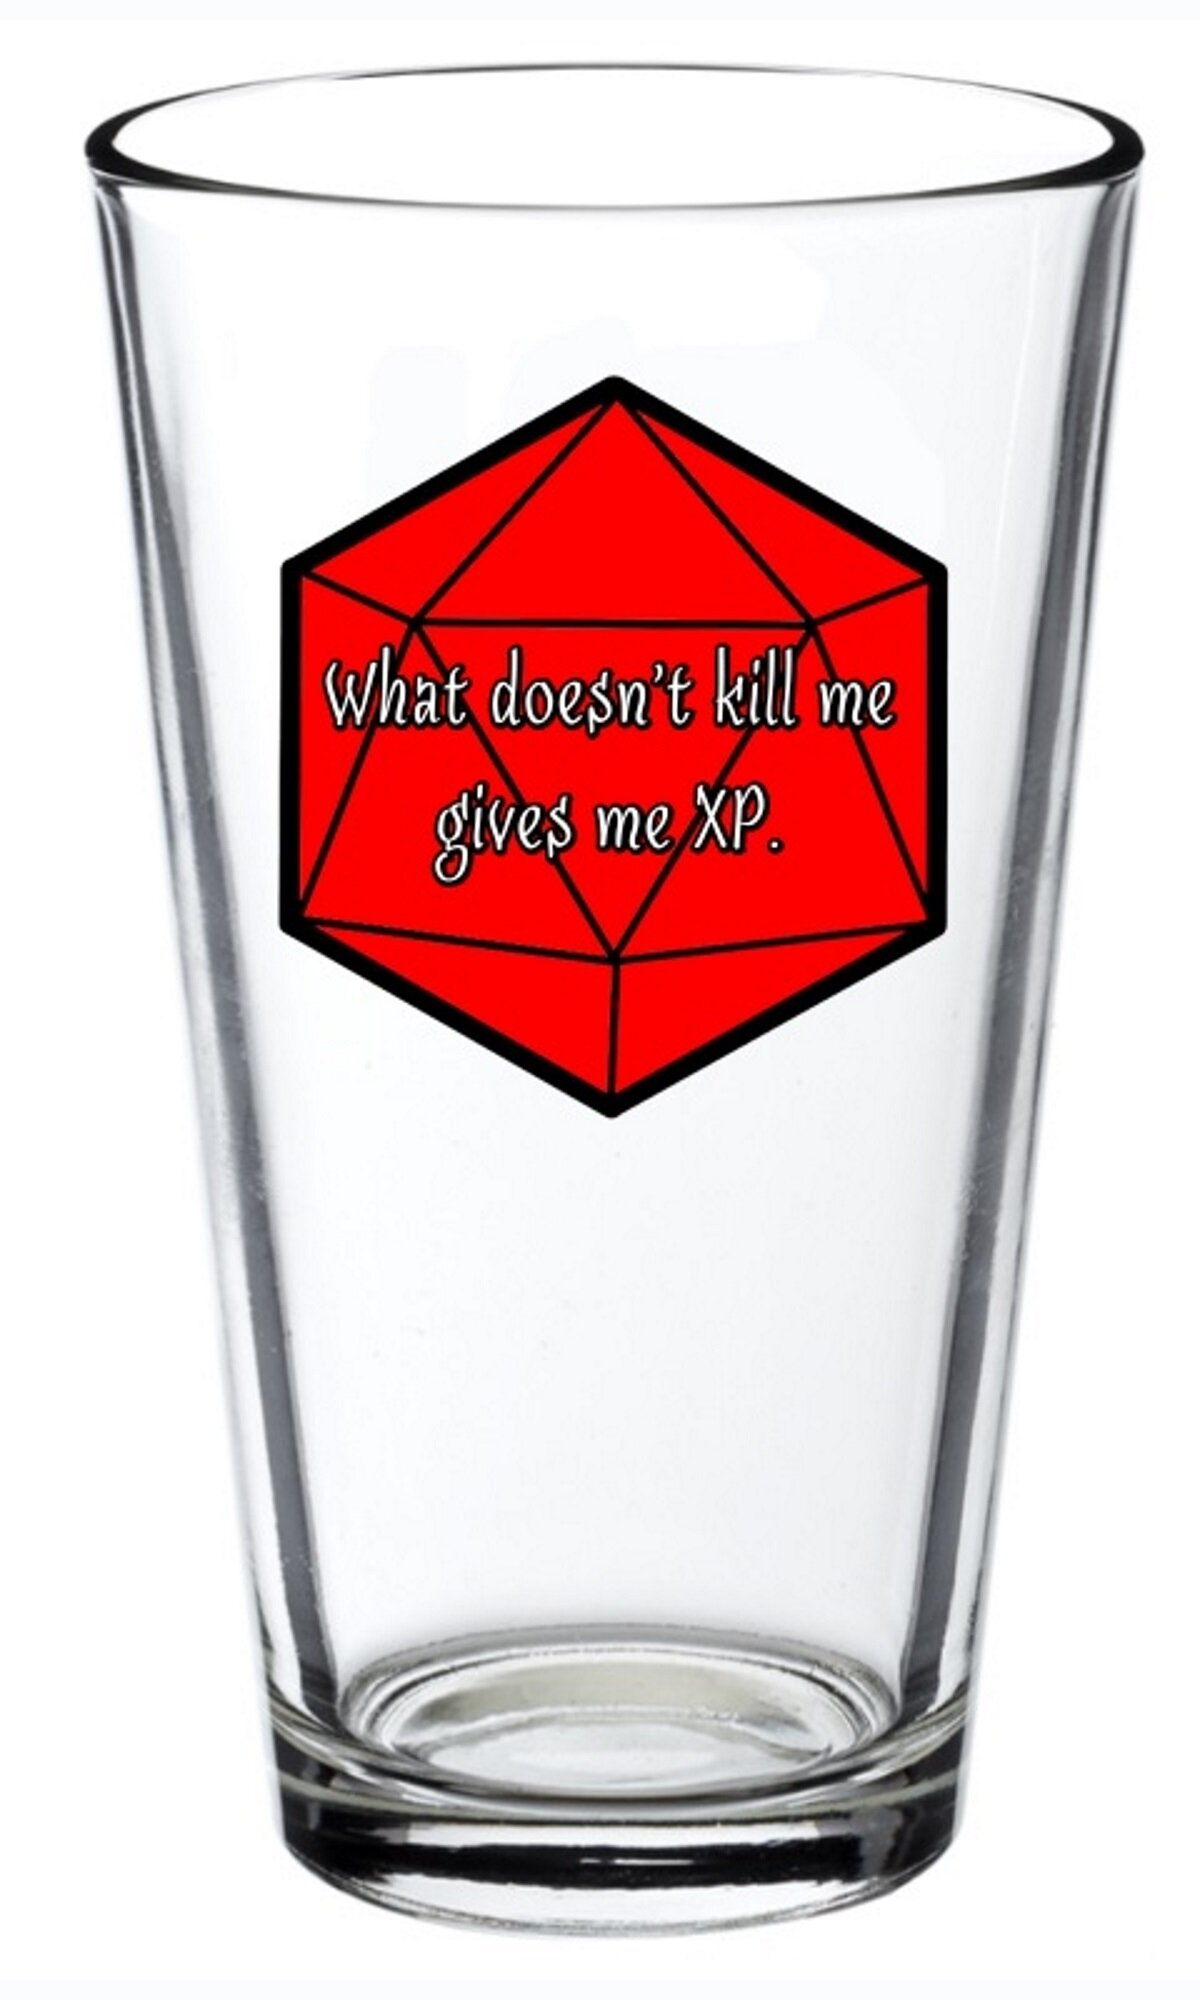 What Doesn't Kill Me Gives Me XP.